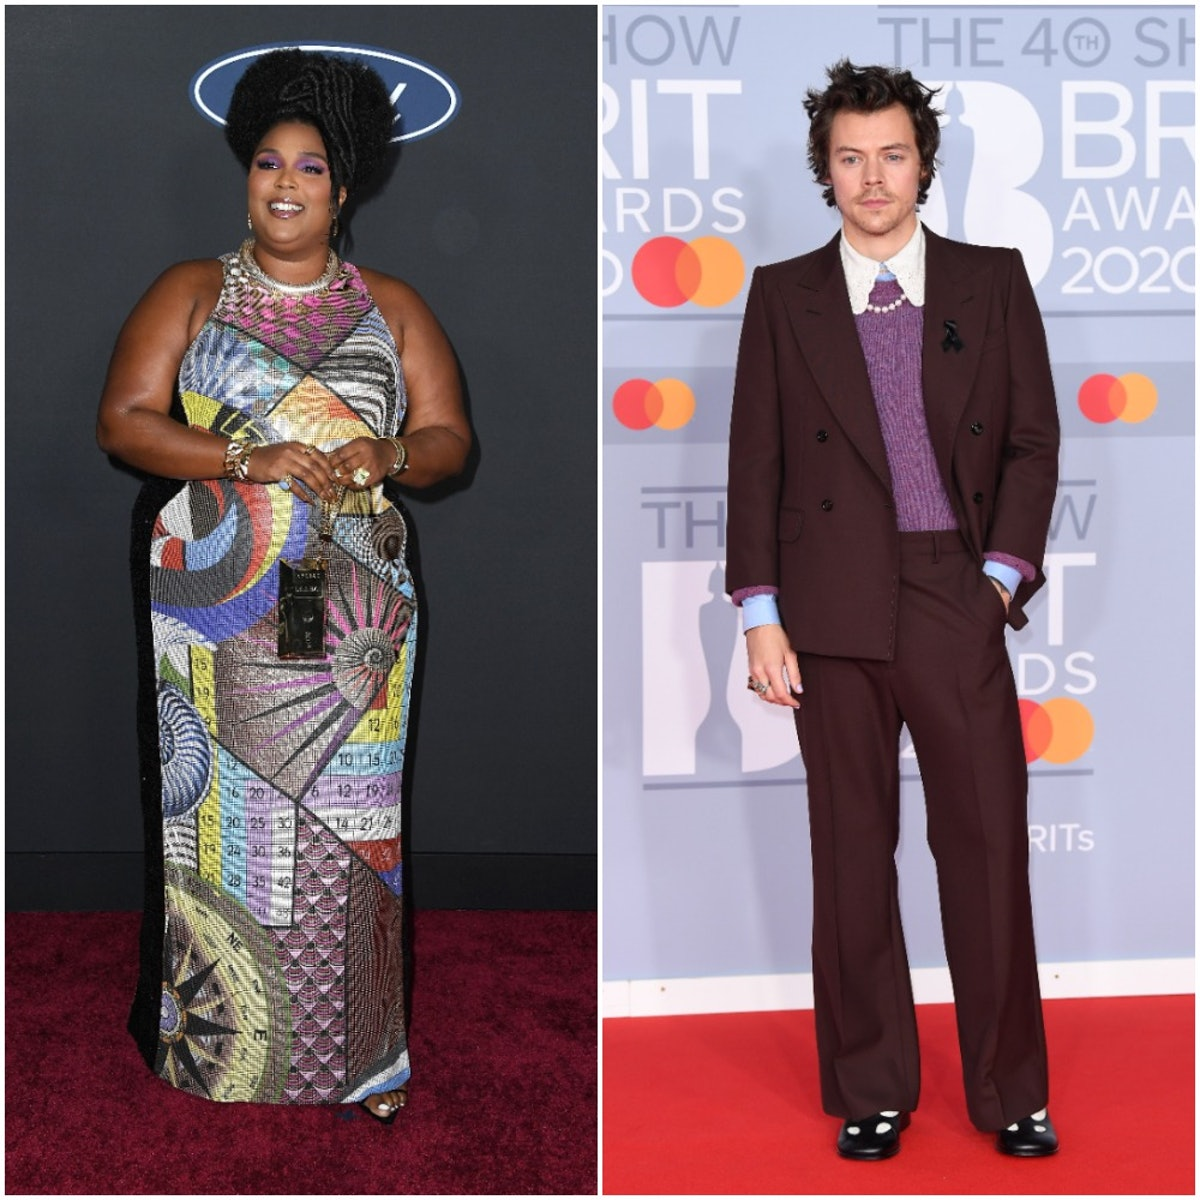 Lizzo and Harry Styles